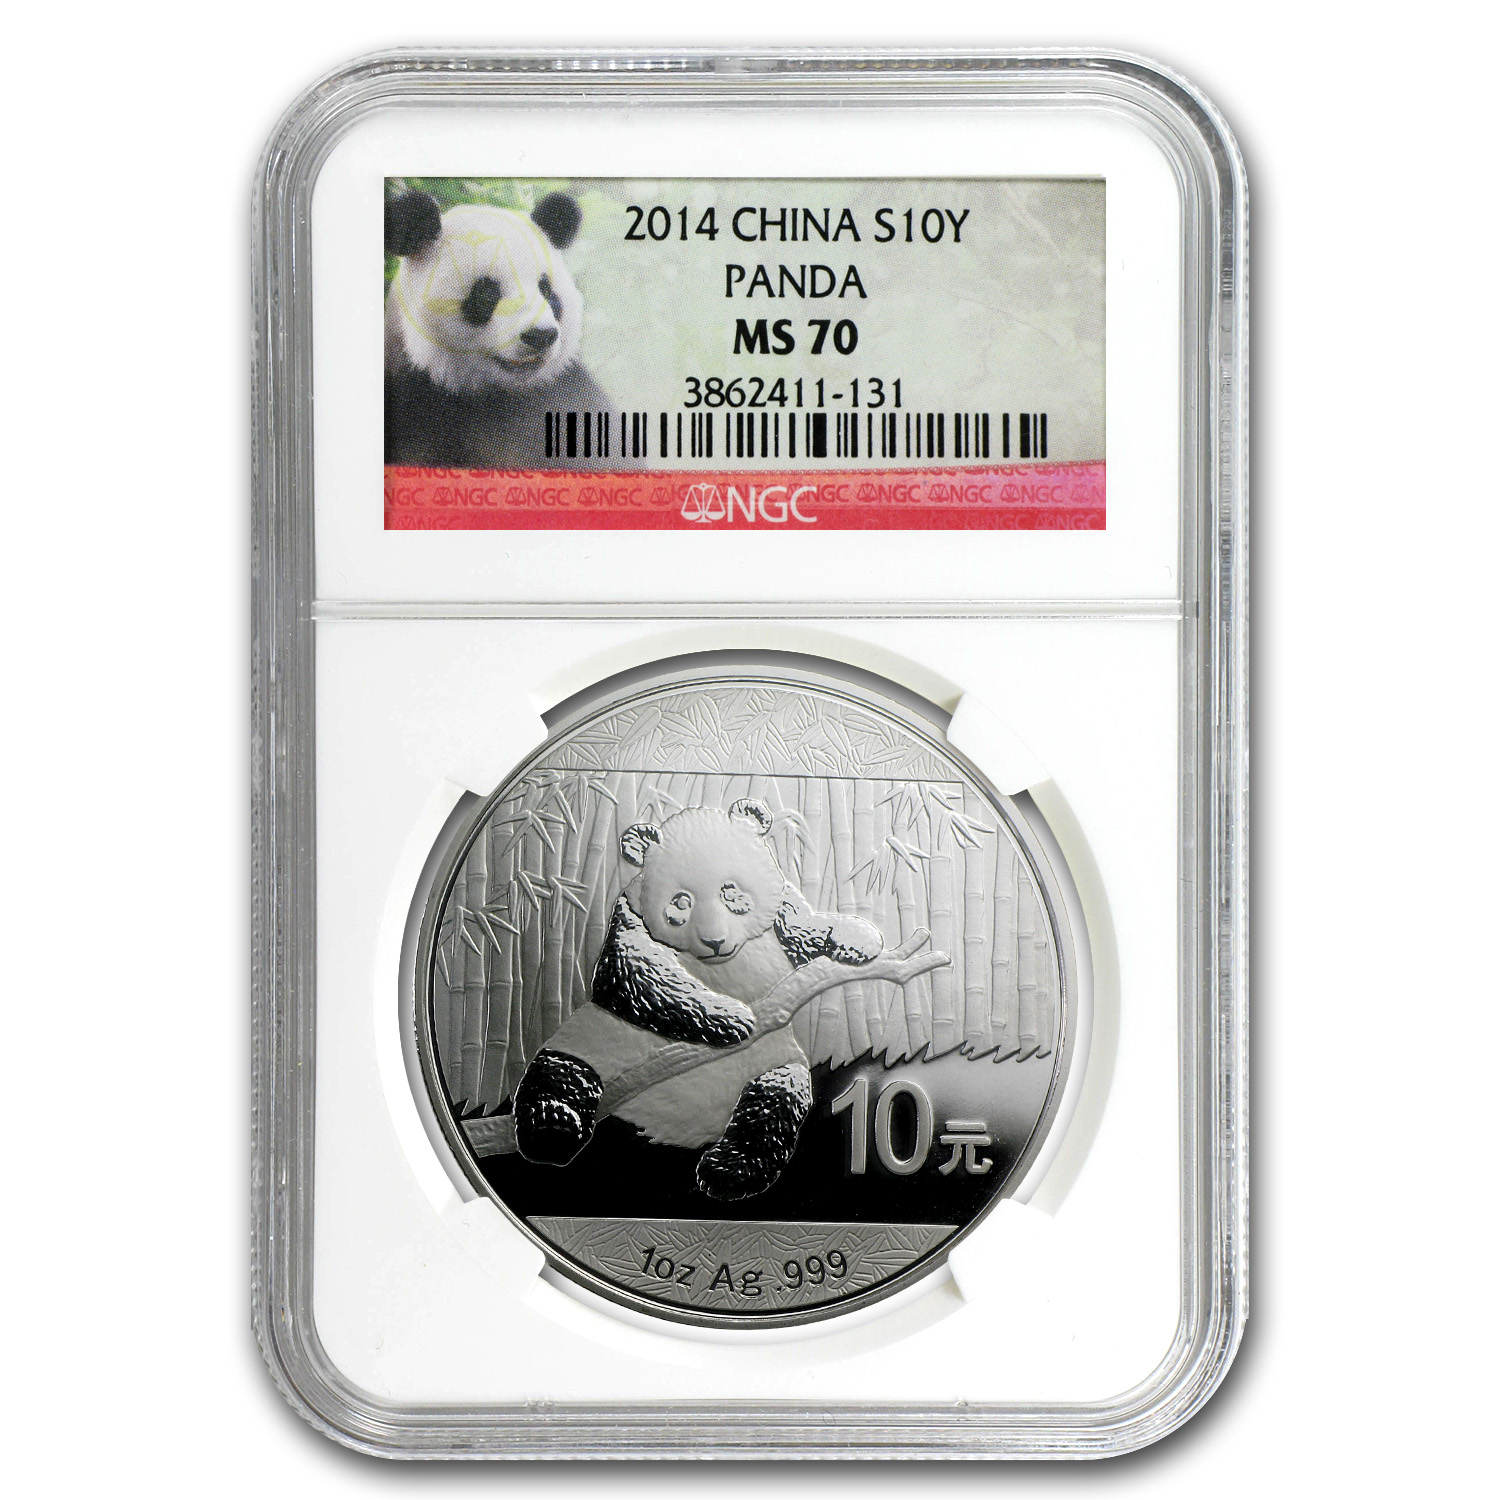 2014 China 1 oz Silver Panda MS-70 NGC